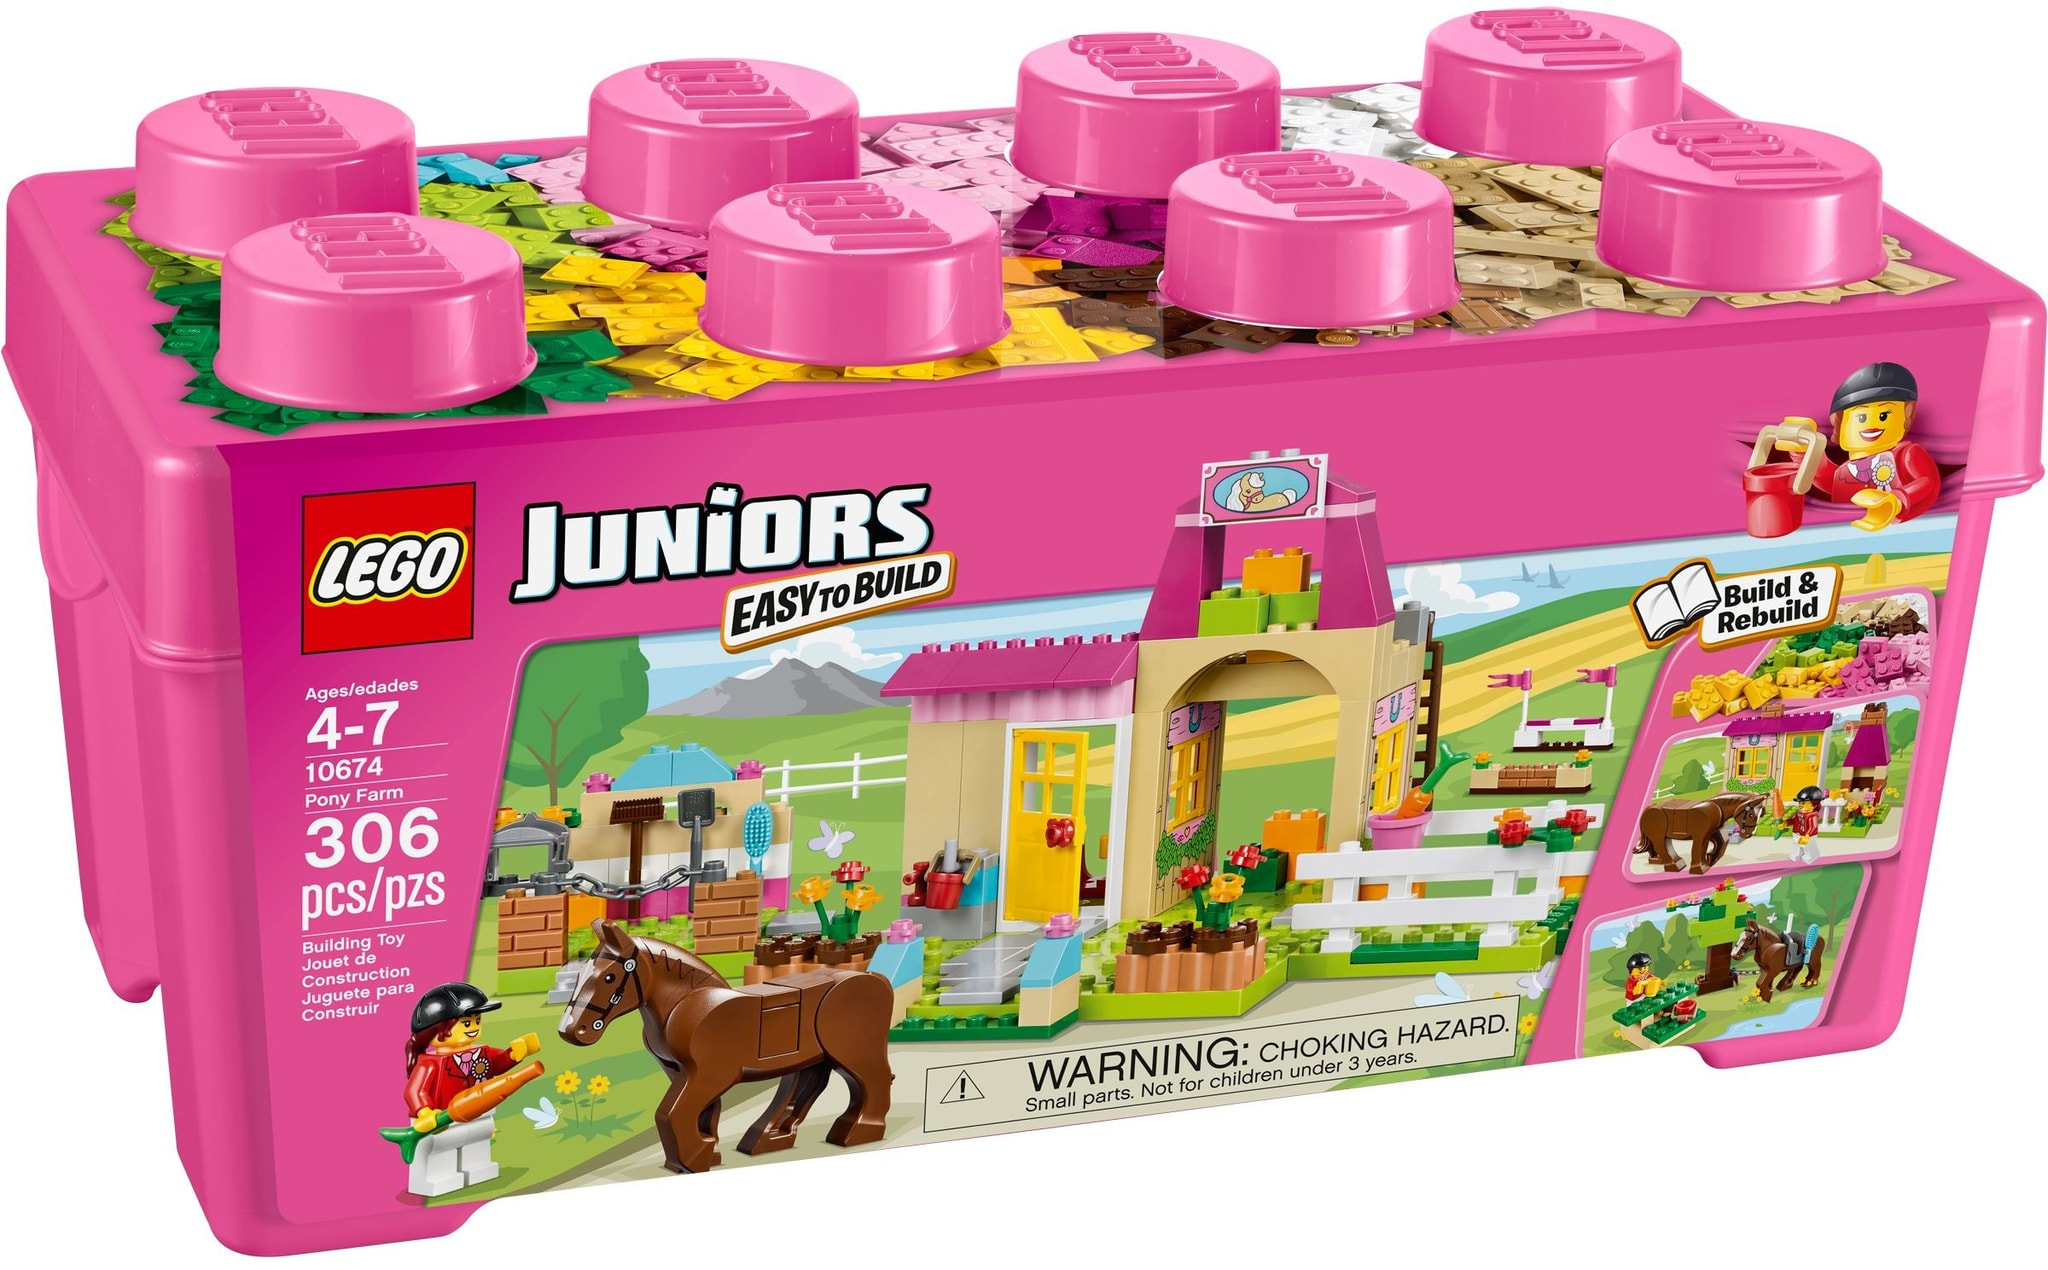 LEGO 10674 - Juniors - Pony Farm